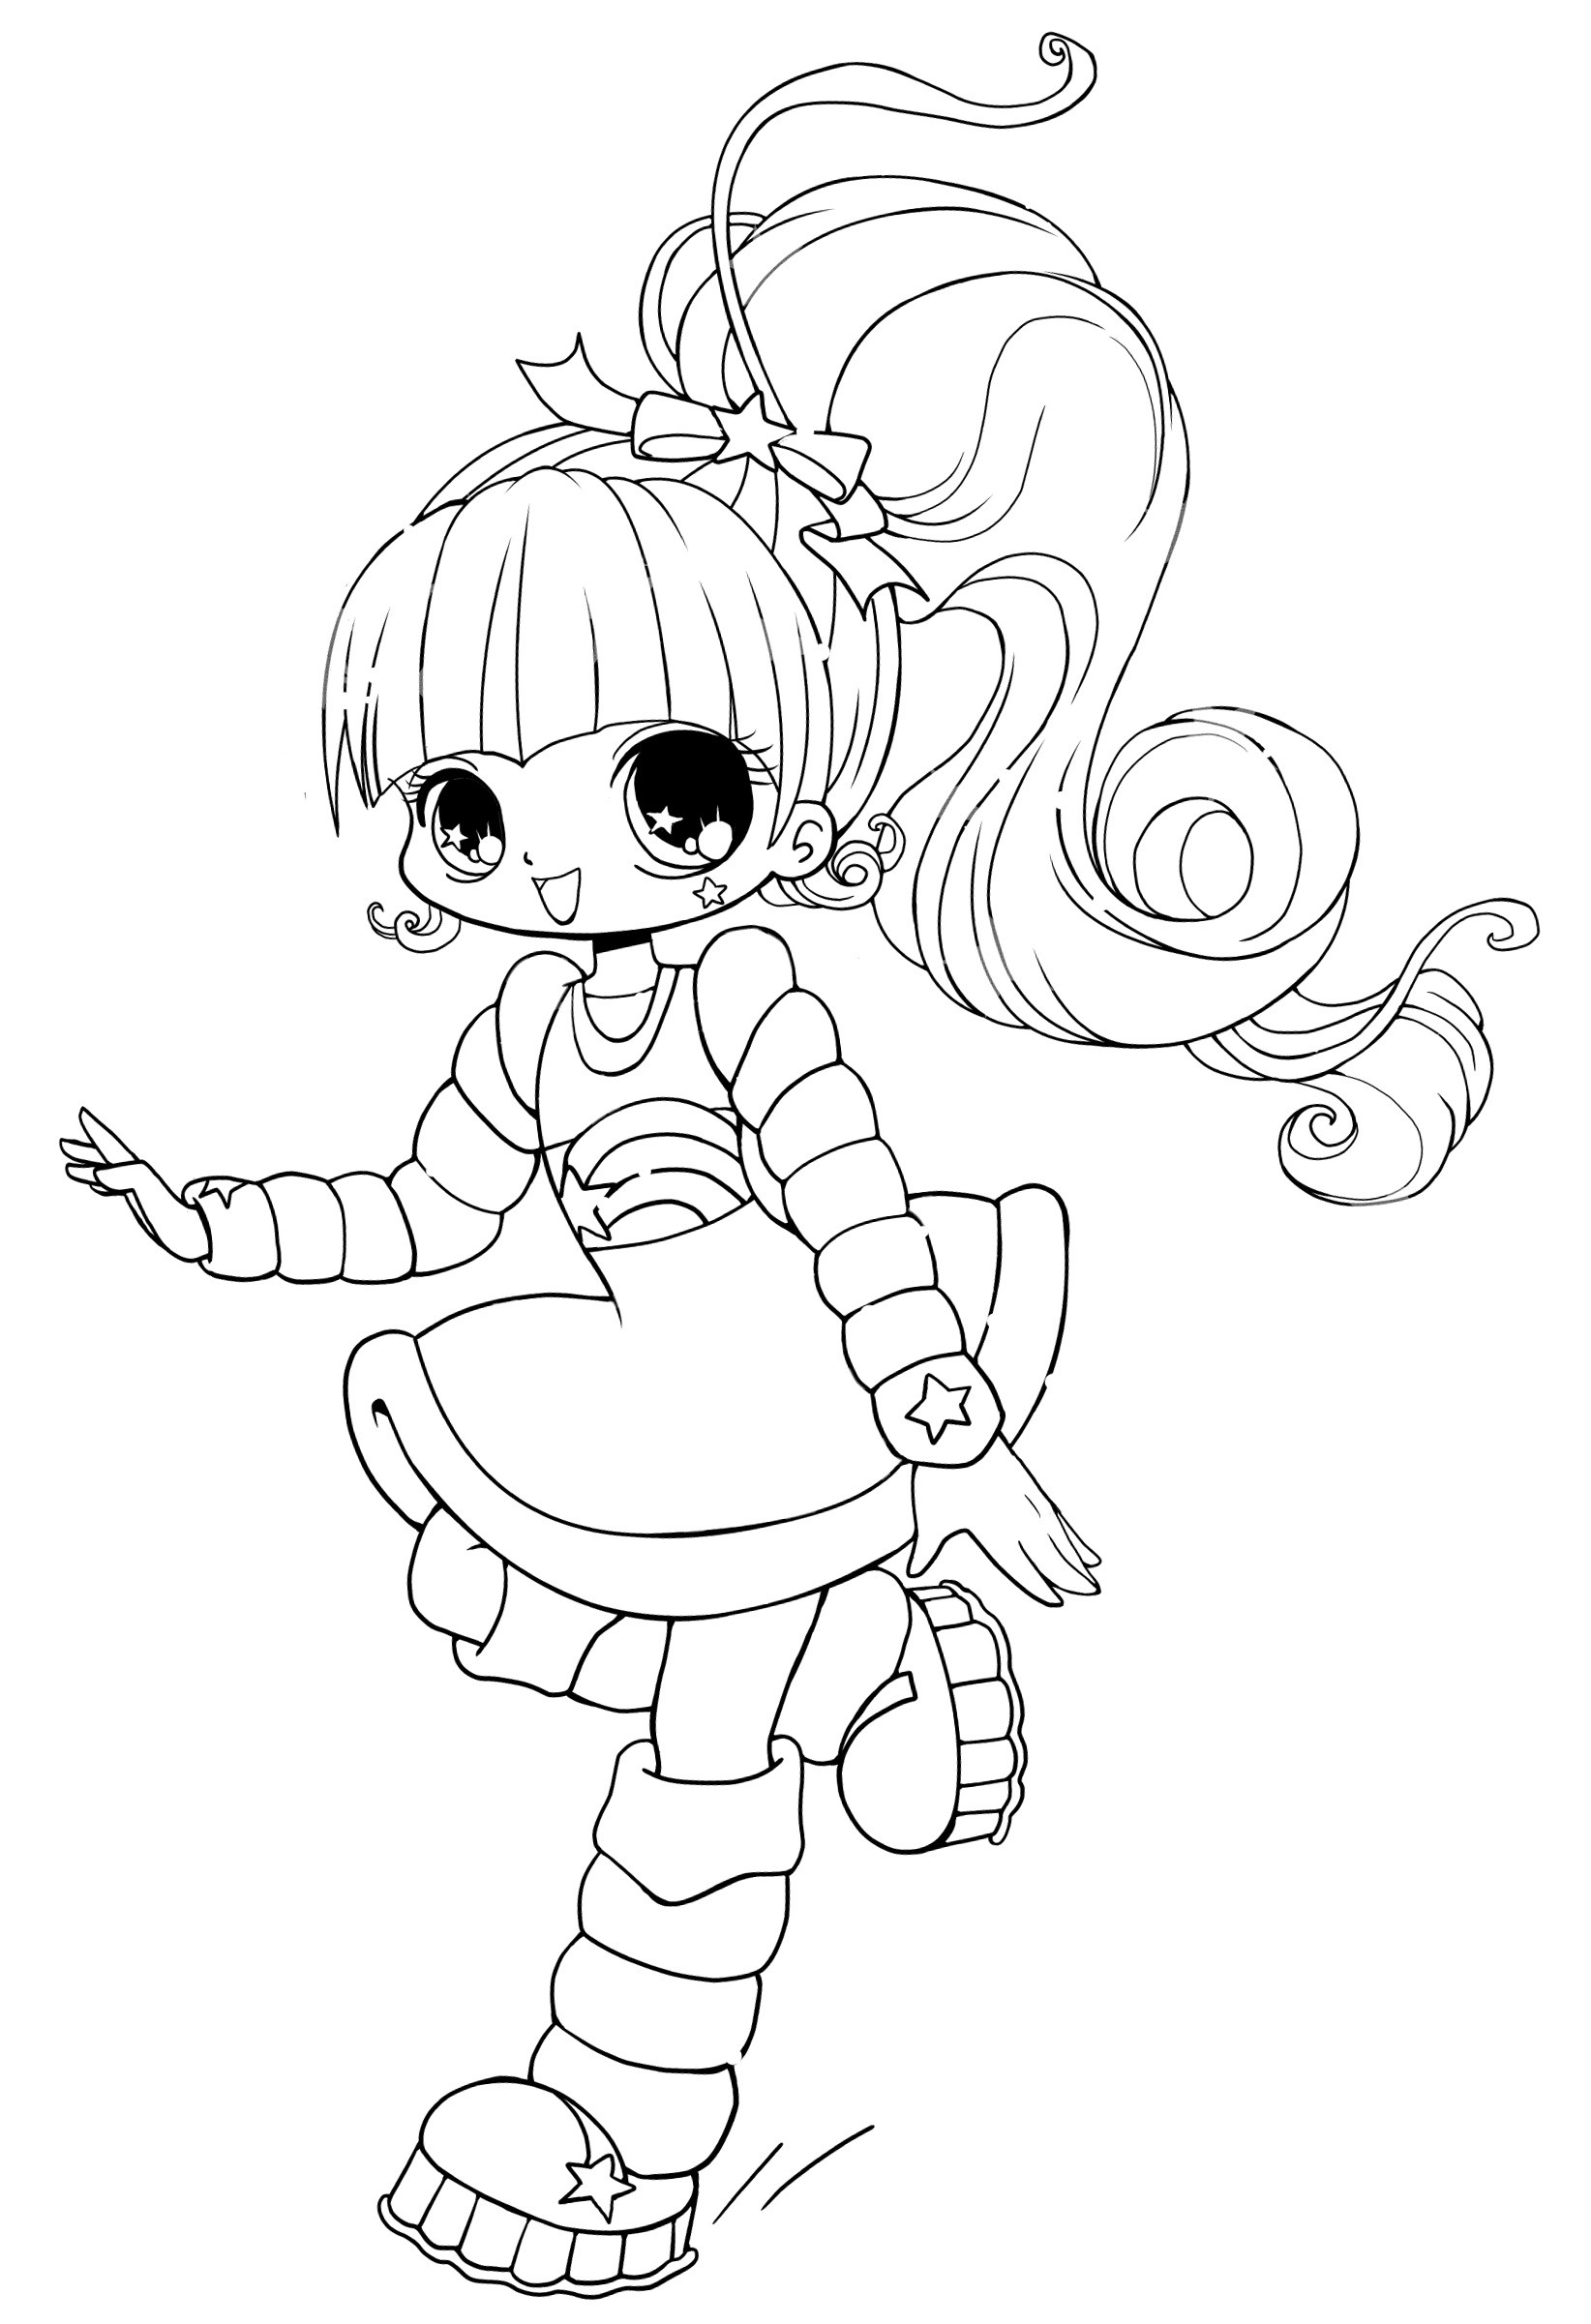 Chibi Girl Coloring Pages  Free Printable Chibi Coloring Pages For Kids